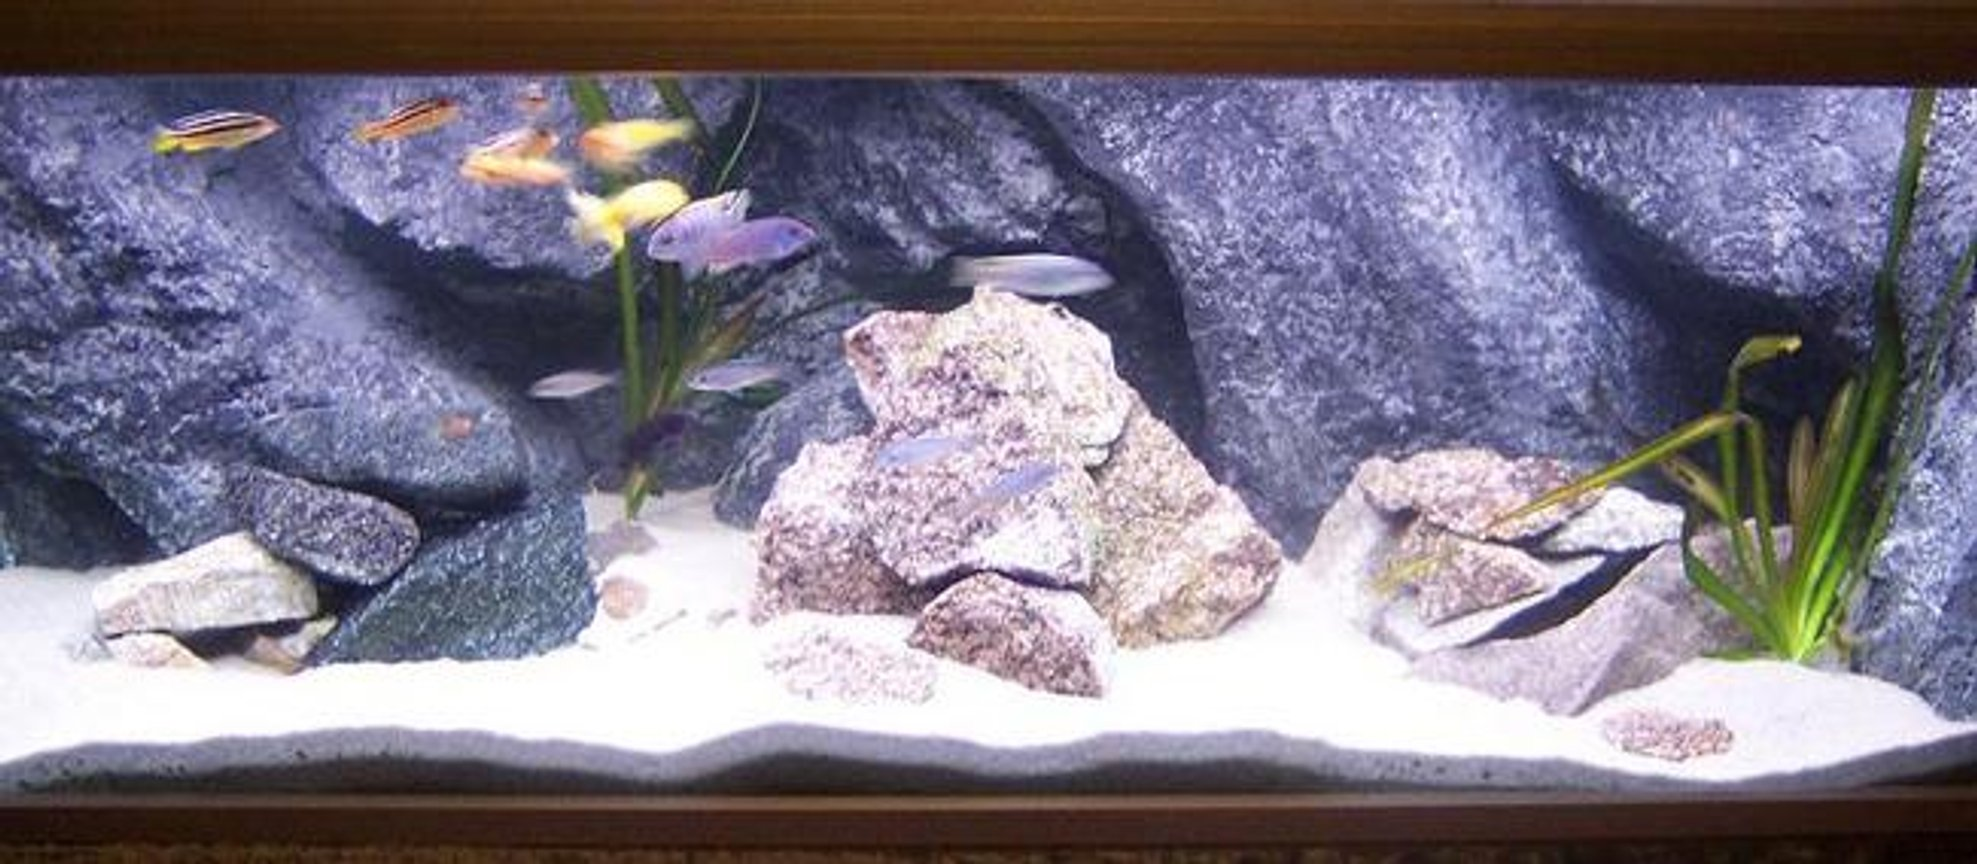 50 gallons freshwater fish tank (mostly fish and non-living decorations) - this my big tank